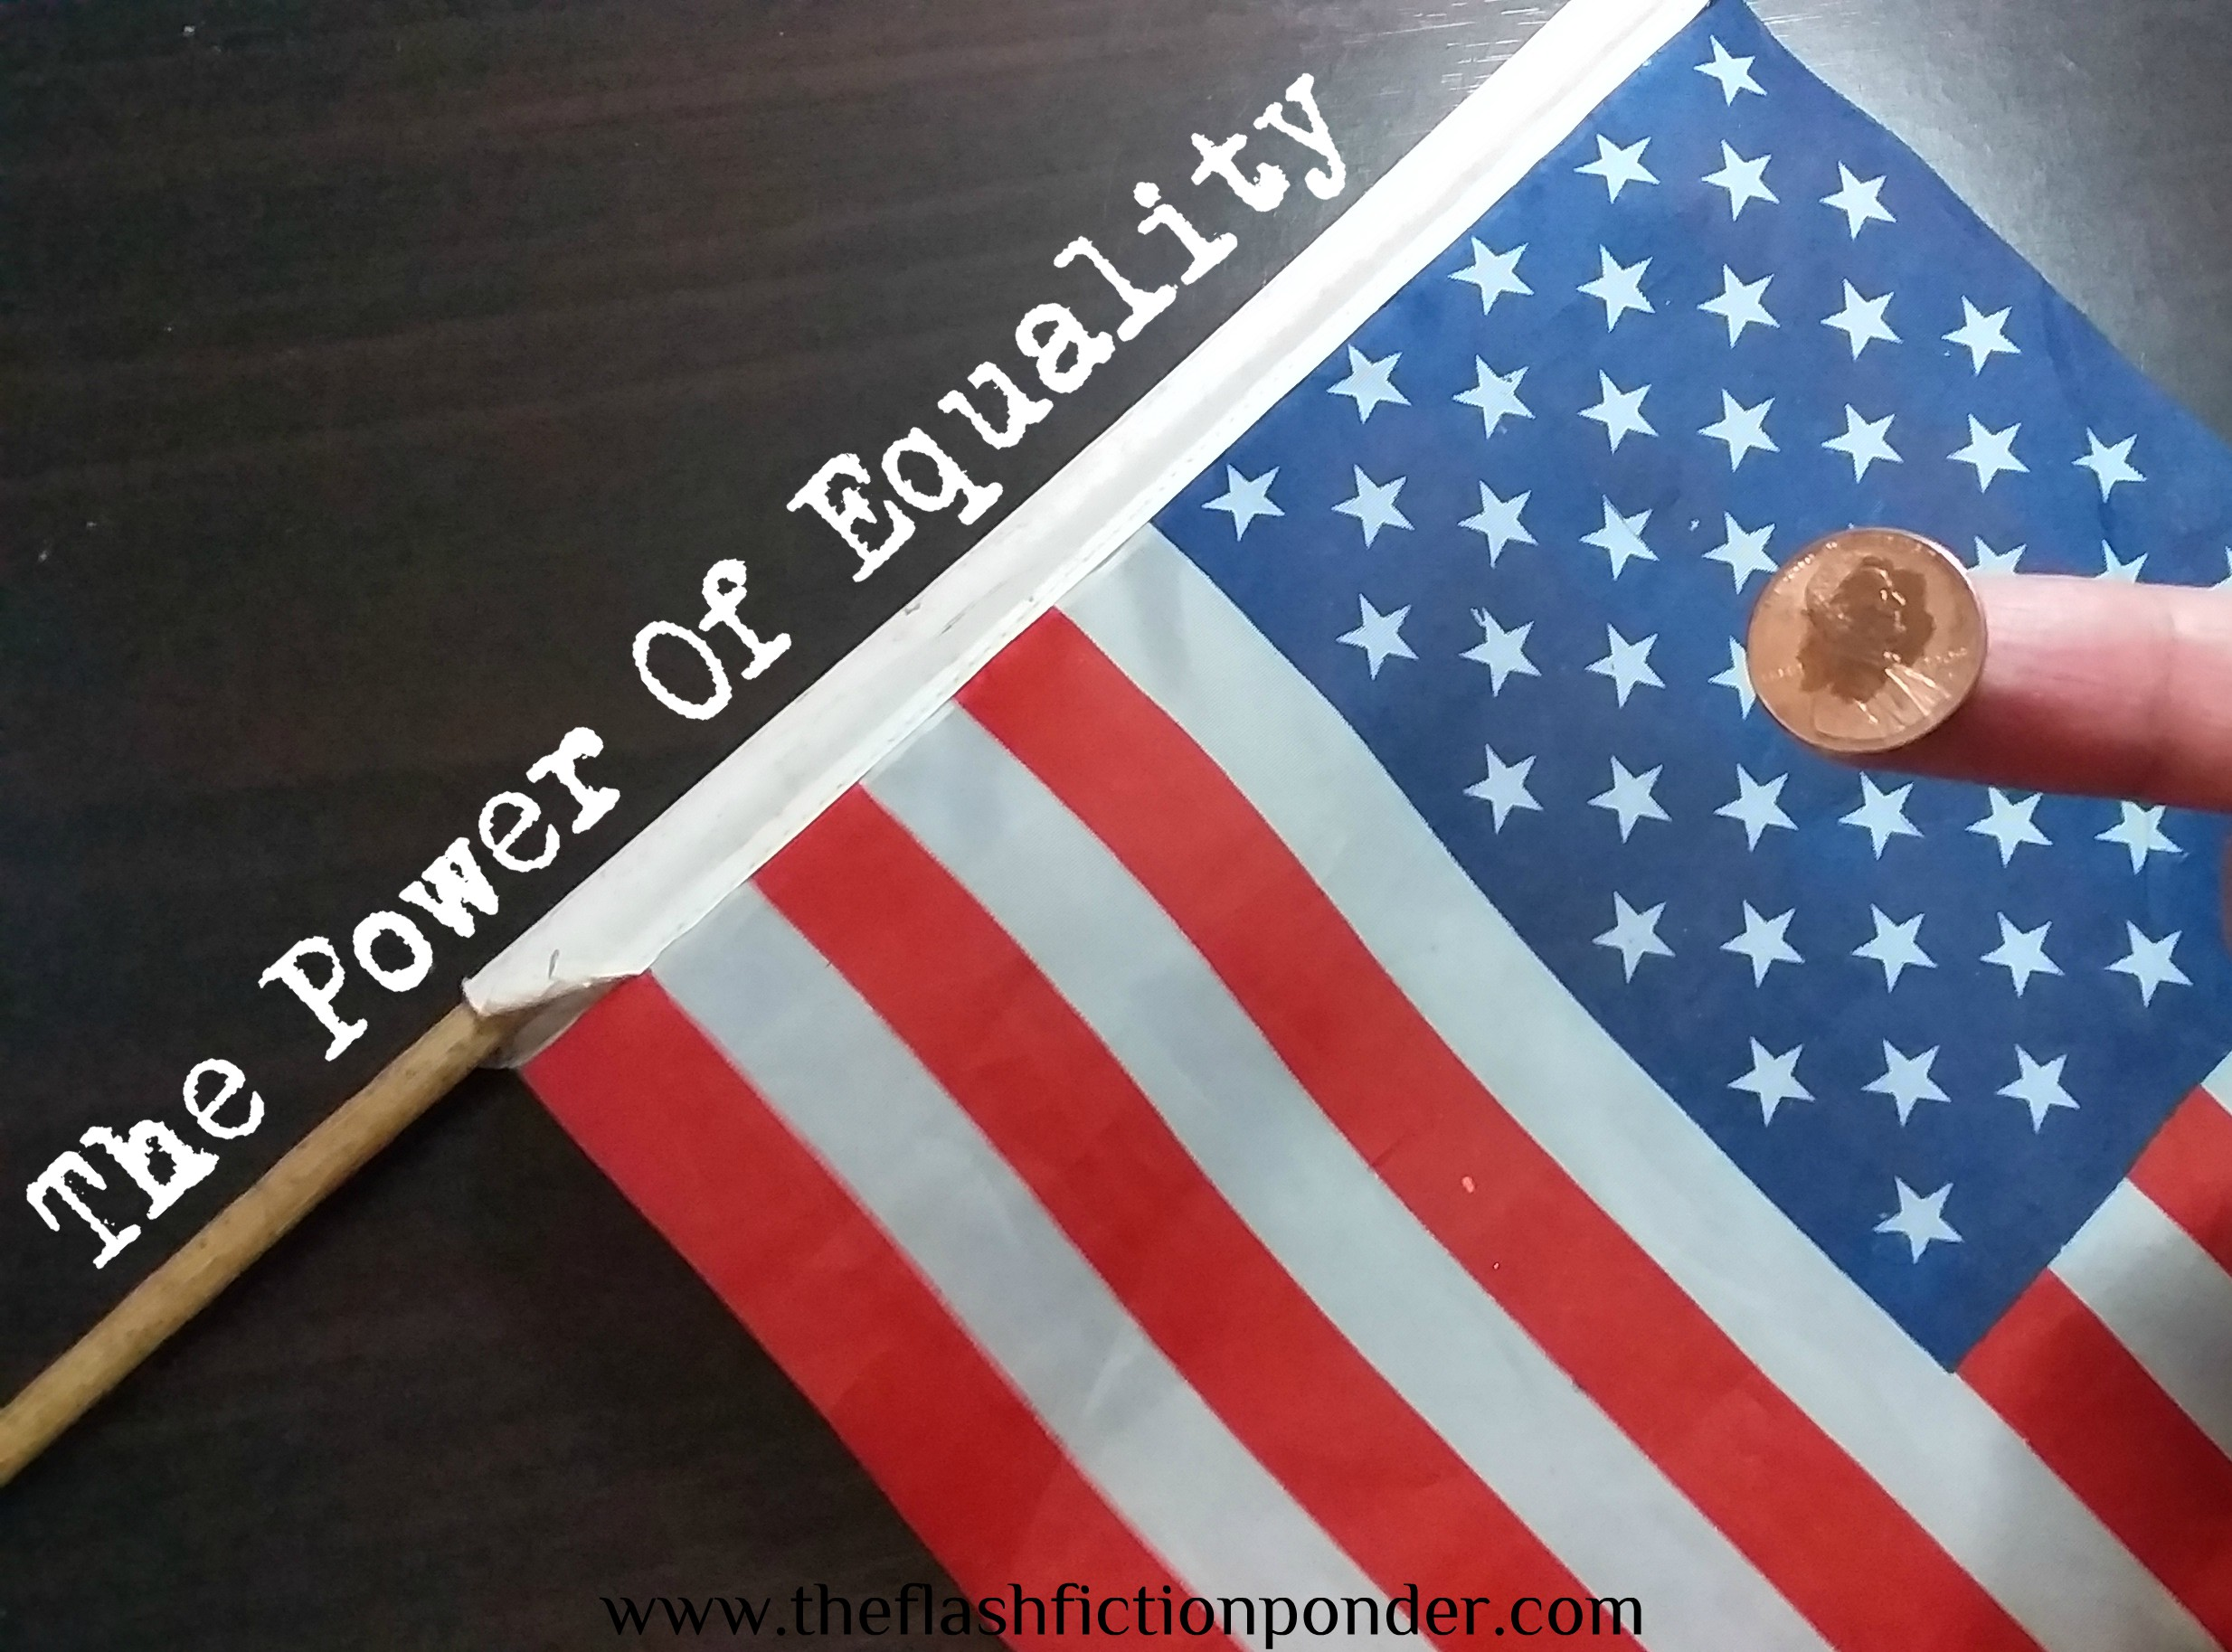 American flag with Abraham Lincoln penny, image for The Power of Equality by Red Hot Chili Peppers, script By Rico Lamoureux of The Flash Fiction Ponder.